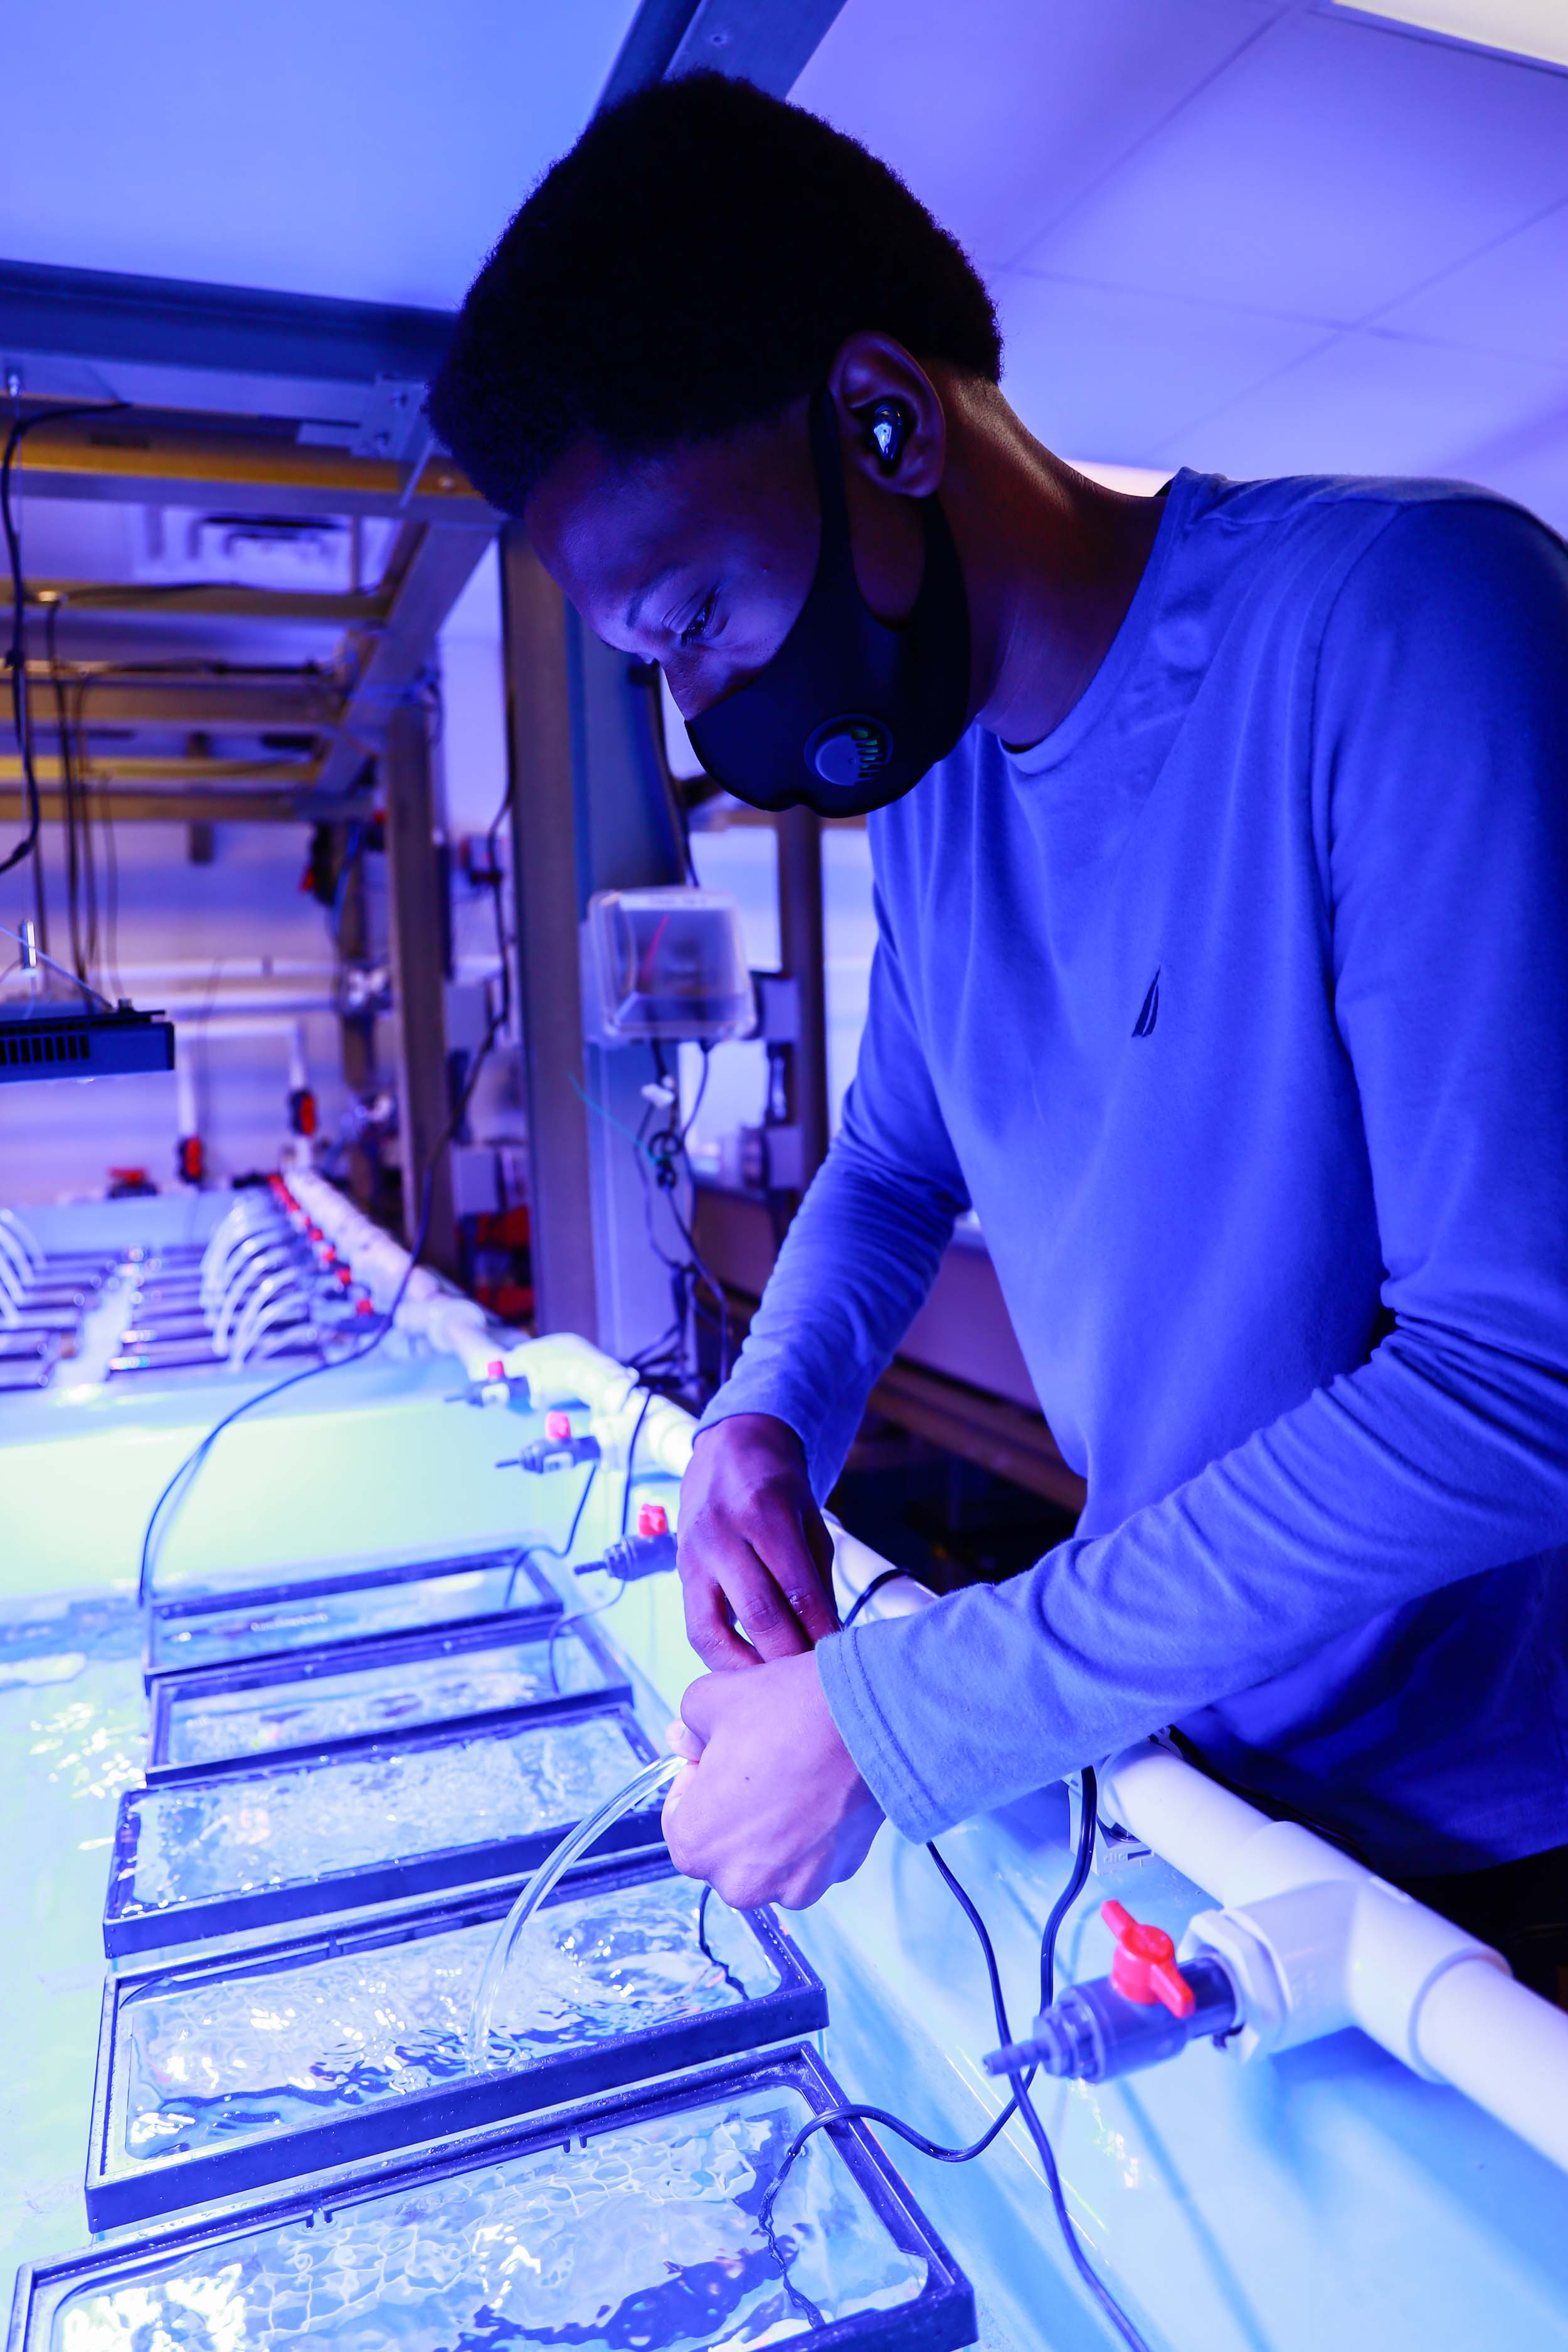 MarSci-LACE Intern Xavier Houston who works on data analysis with Postdoctoral Researcher Dr. Sara Williams in the Coral Health and Disease Lab at Mote Marine Laboratory in Sarasota, Fla. Photo Credit - © Mote Marine Laboratory